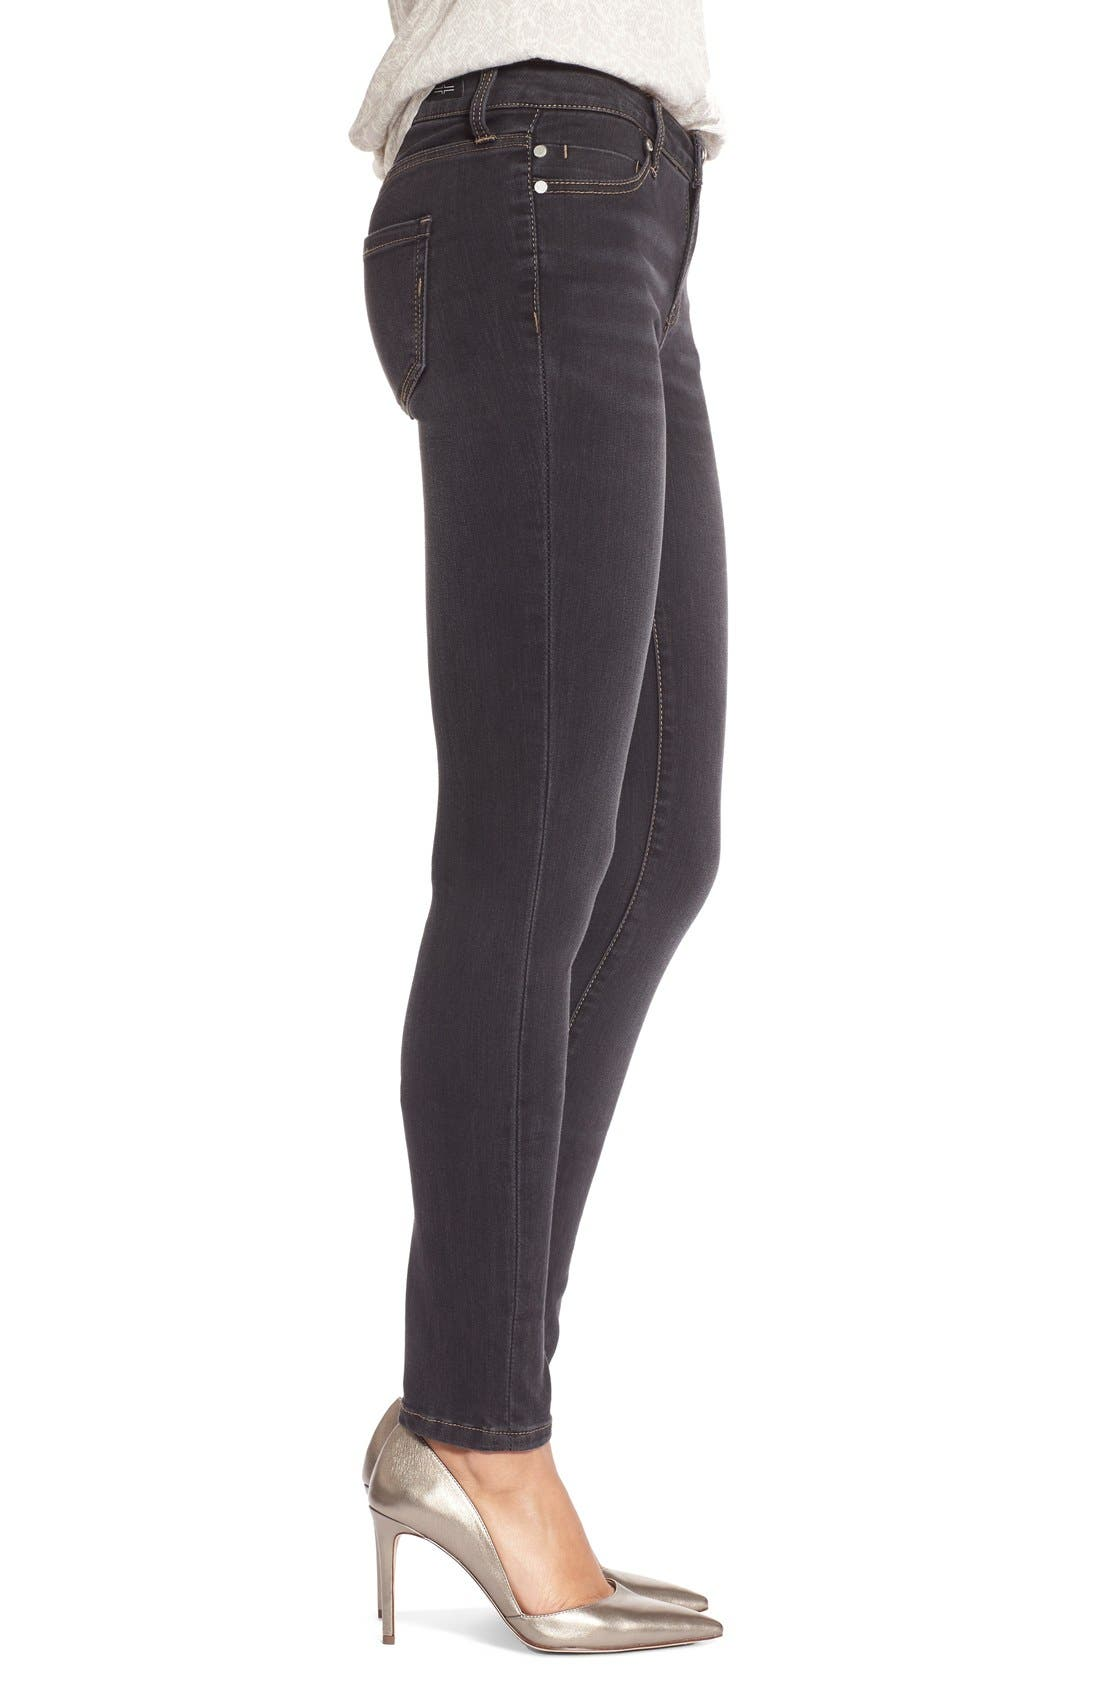 Abby StretchSkinny Jeans,                             Alternate thumbnail 3, color,                             020